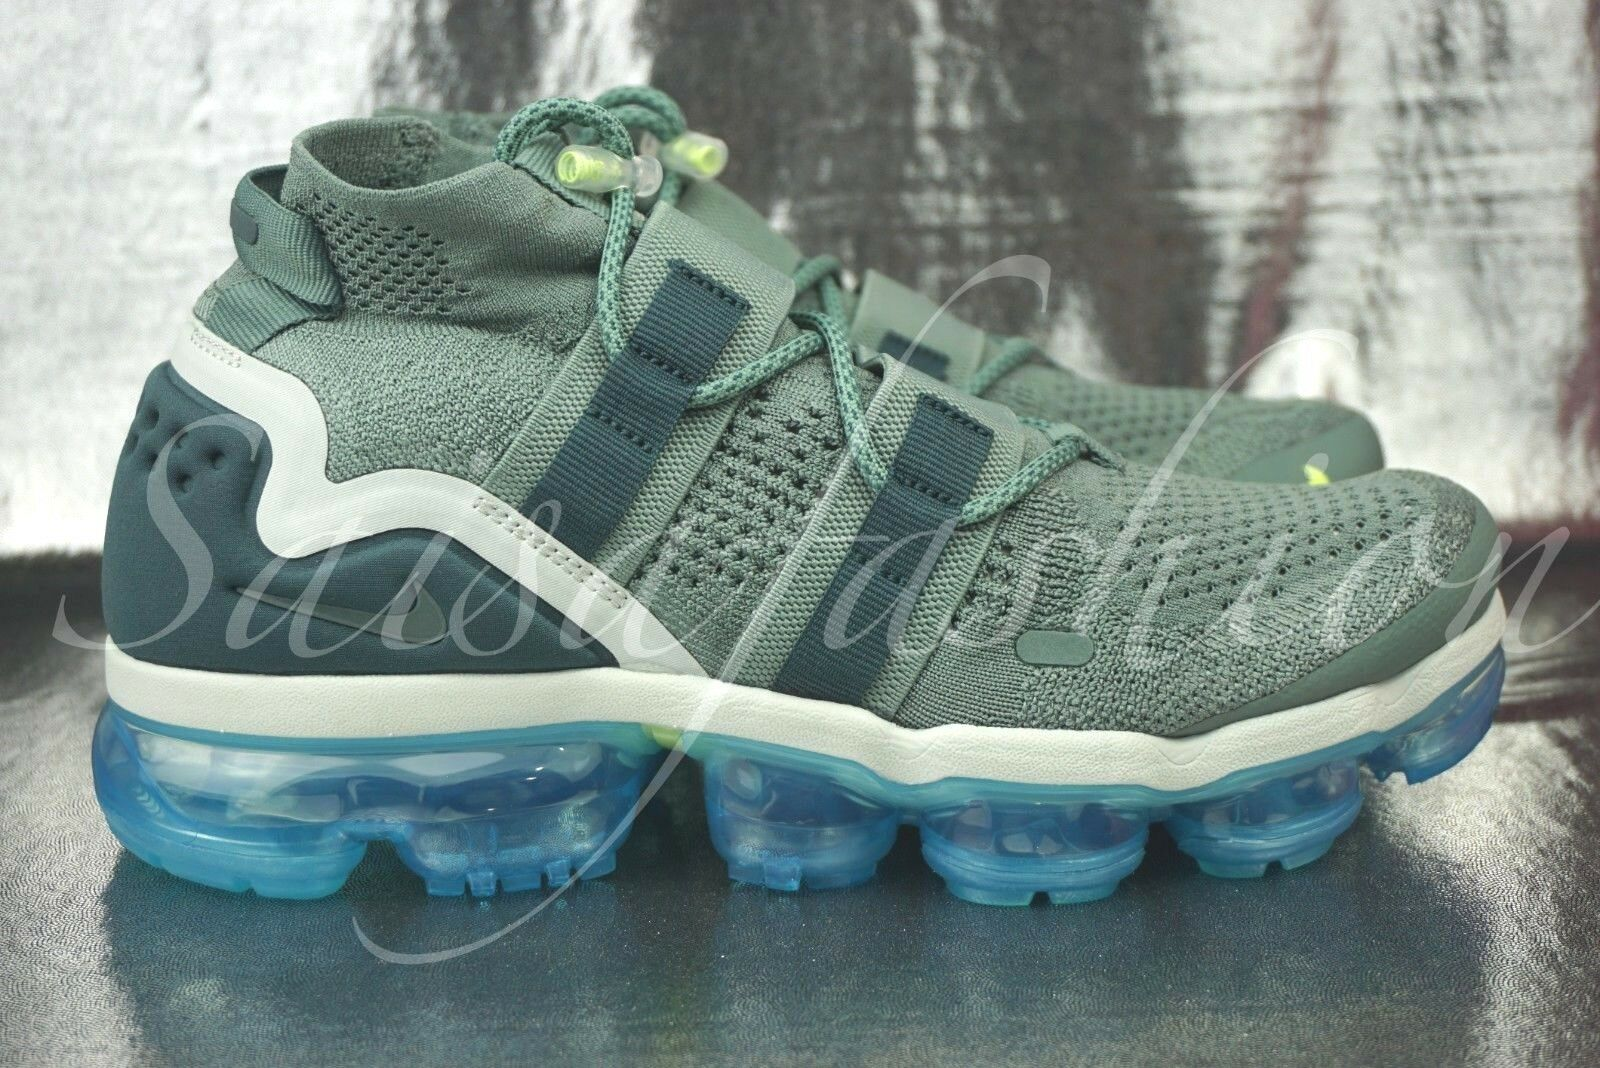 b6369c5e6c774 Nike Air Vapormax FK Flyknit Utility 8.5 Clay Green Faded Spruce ...